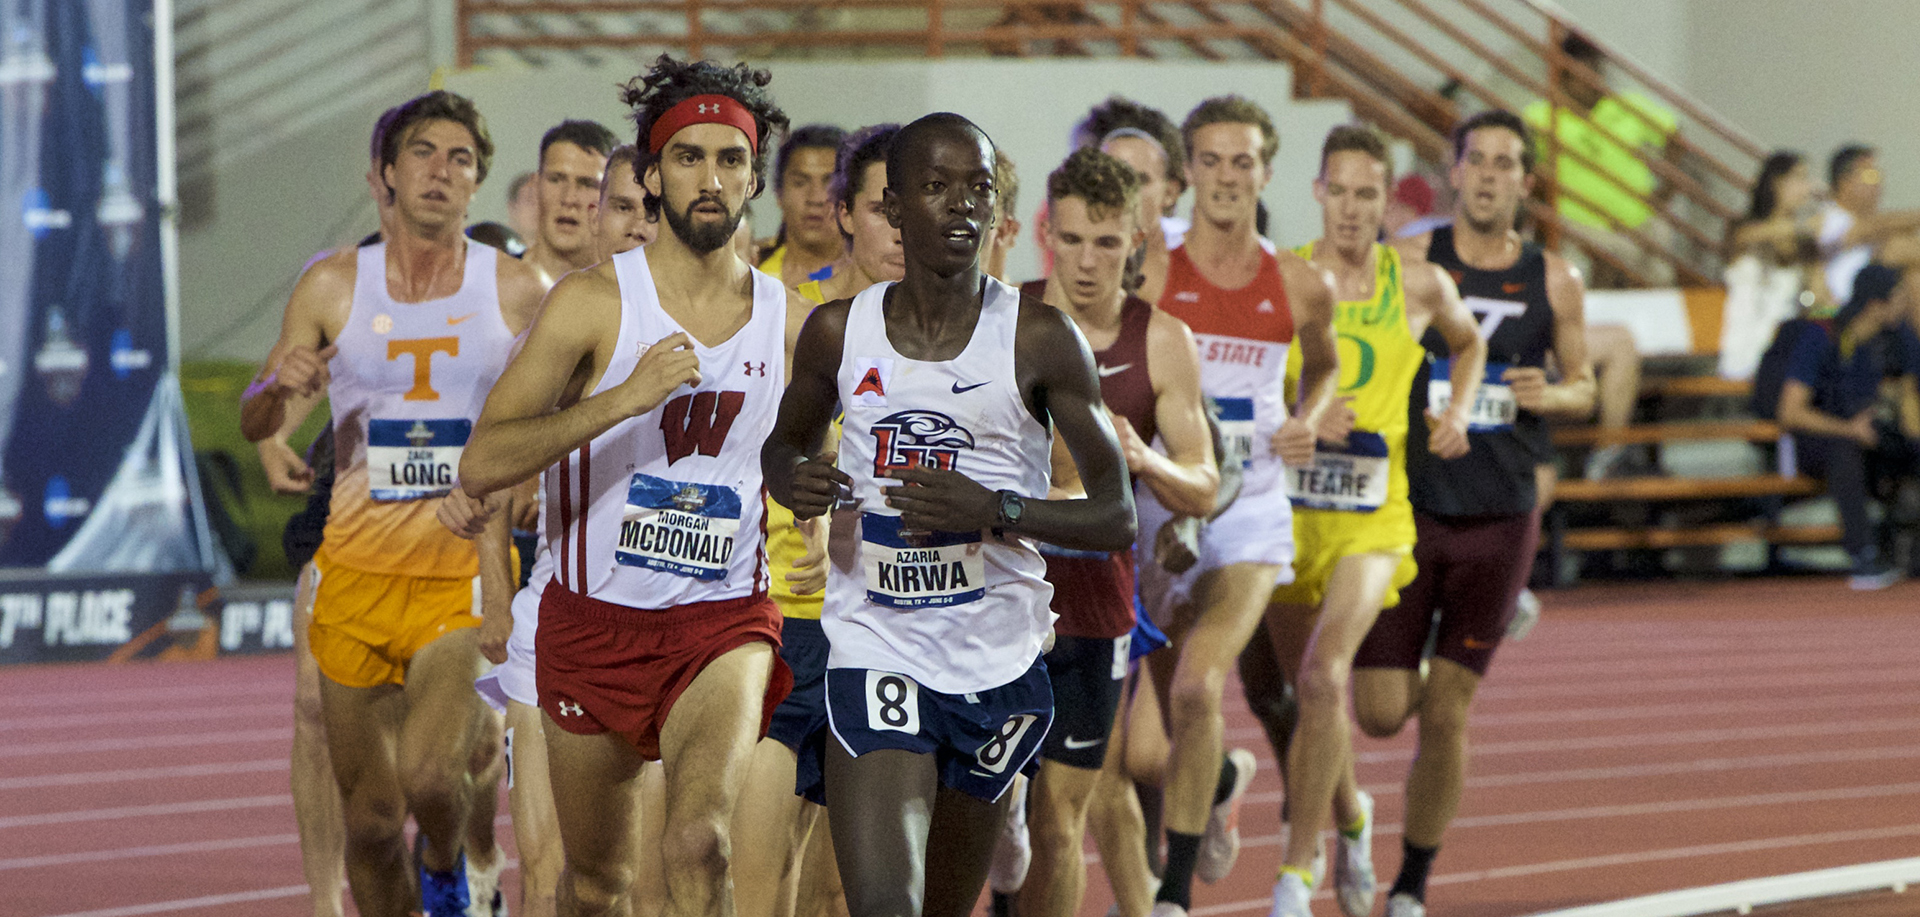 Azaria Kirwa qualified for the NCAA Division I Outdoor Track & Field Championships in the men's 5K on Saturday. (Photo courtesy Cheryl Treworgy/Pretty Sporty)